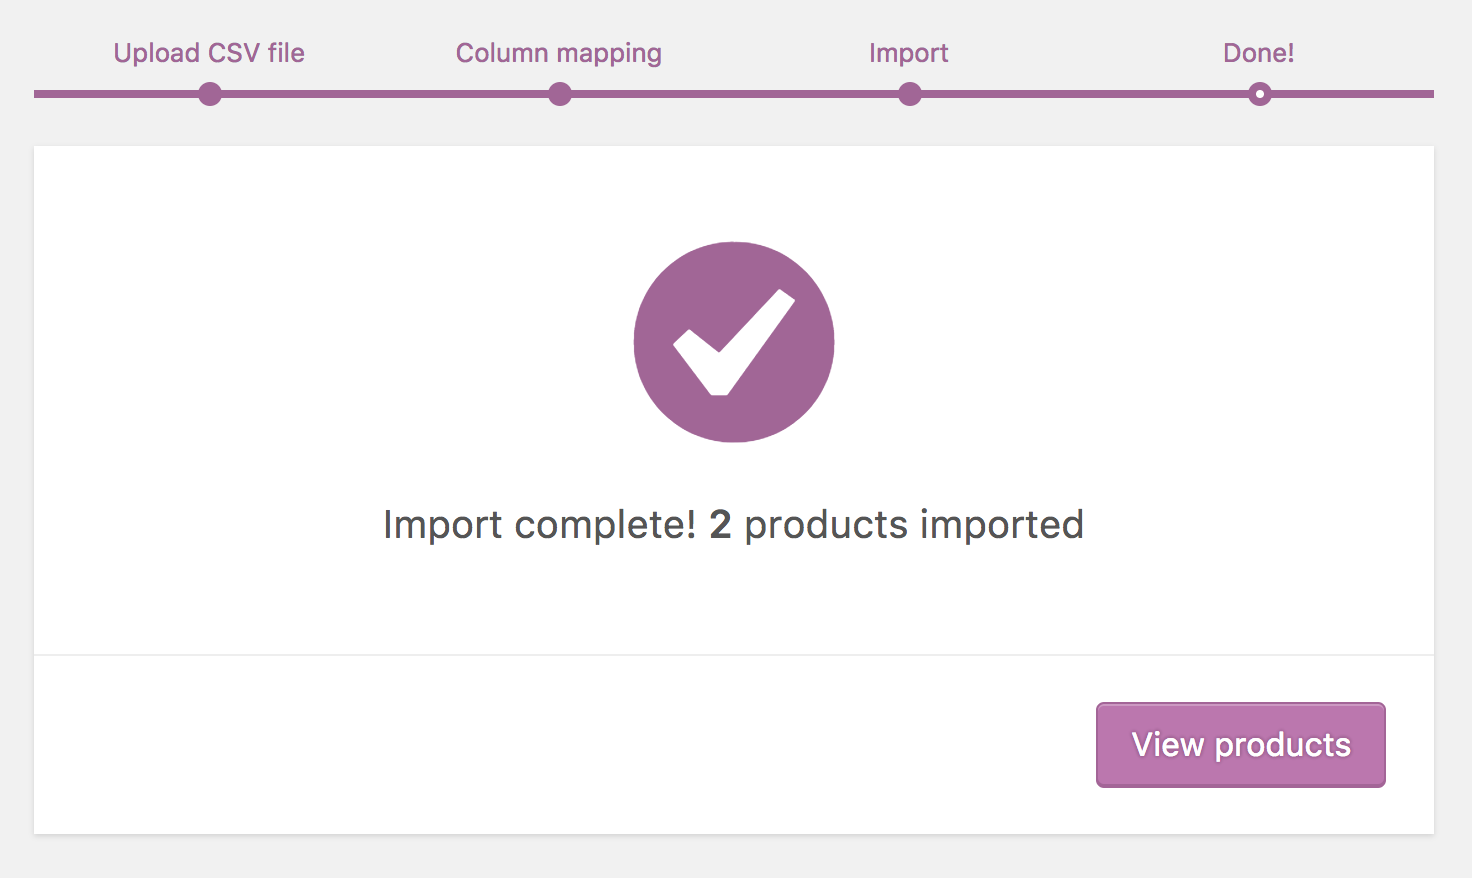 Learn about import procedure